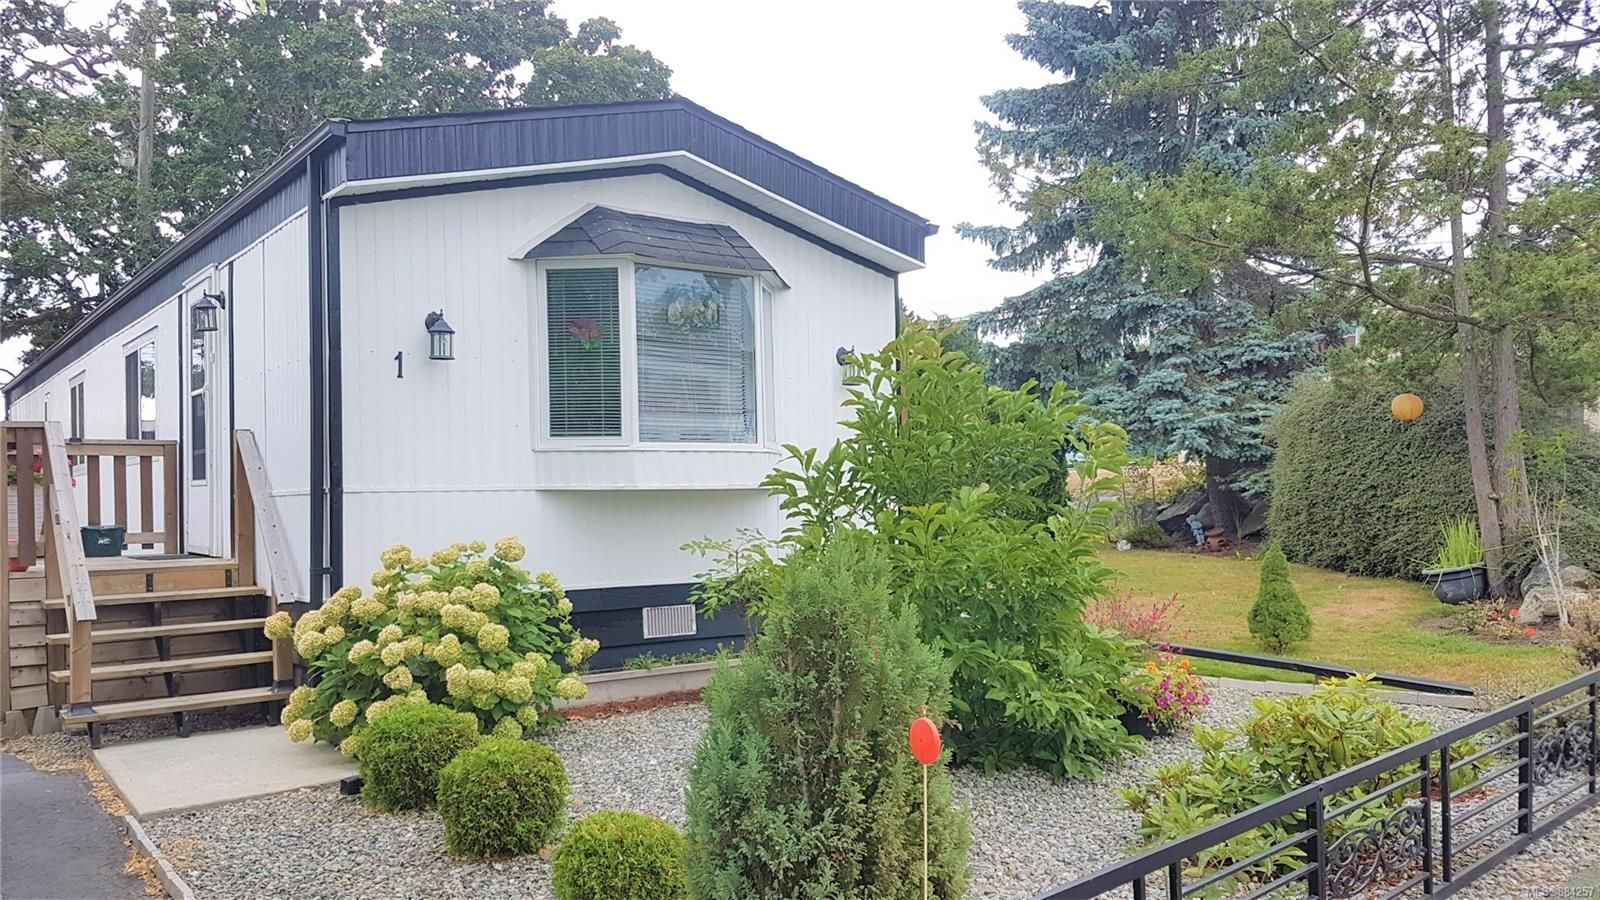 Main Photo: 1 1498 Admirals Rd in : VR Glentana Manufactured Home for sale (View Royal)  : MLS®# 884257